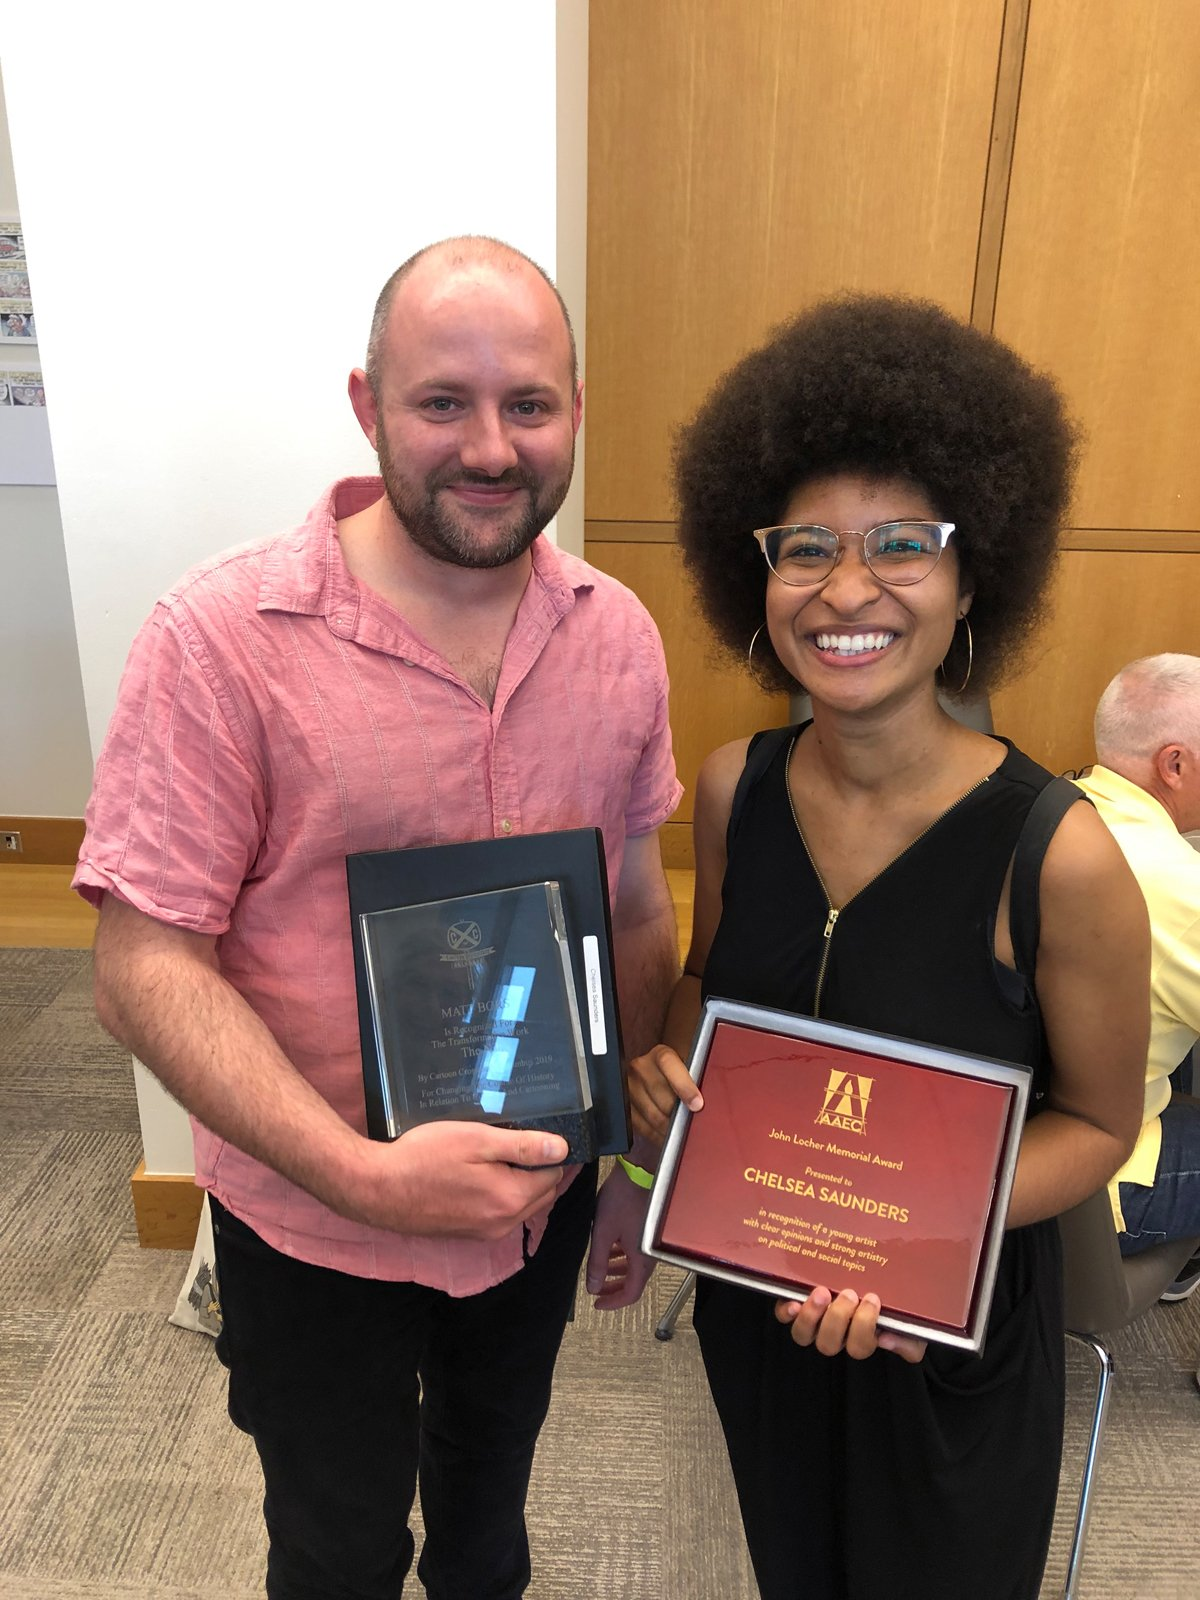 Congratulations to Nib contributor Chelsea Saunders for her Locher Award win! We were lucky to be there this weekend at CXC to see her accept it.  We'd also like to thank @CXCFestival for giving @MattBors the Transformative Work Award for his work founding and editing The Nib! https://t.co/iHQYpvk0h9